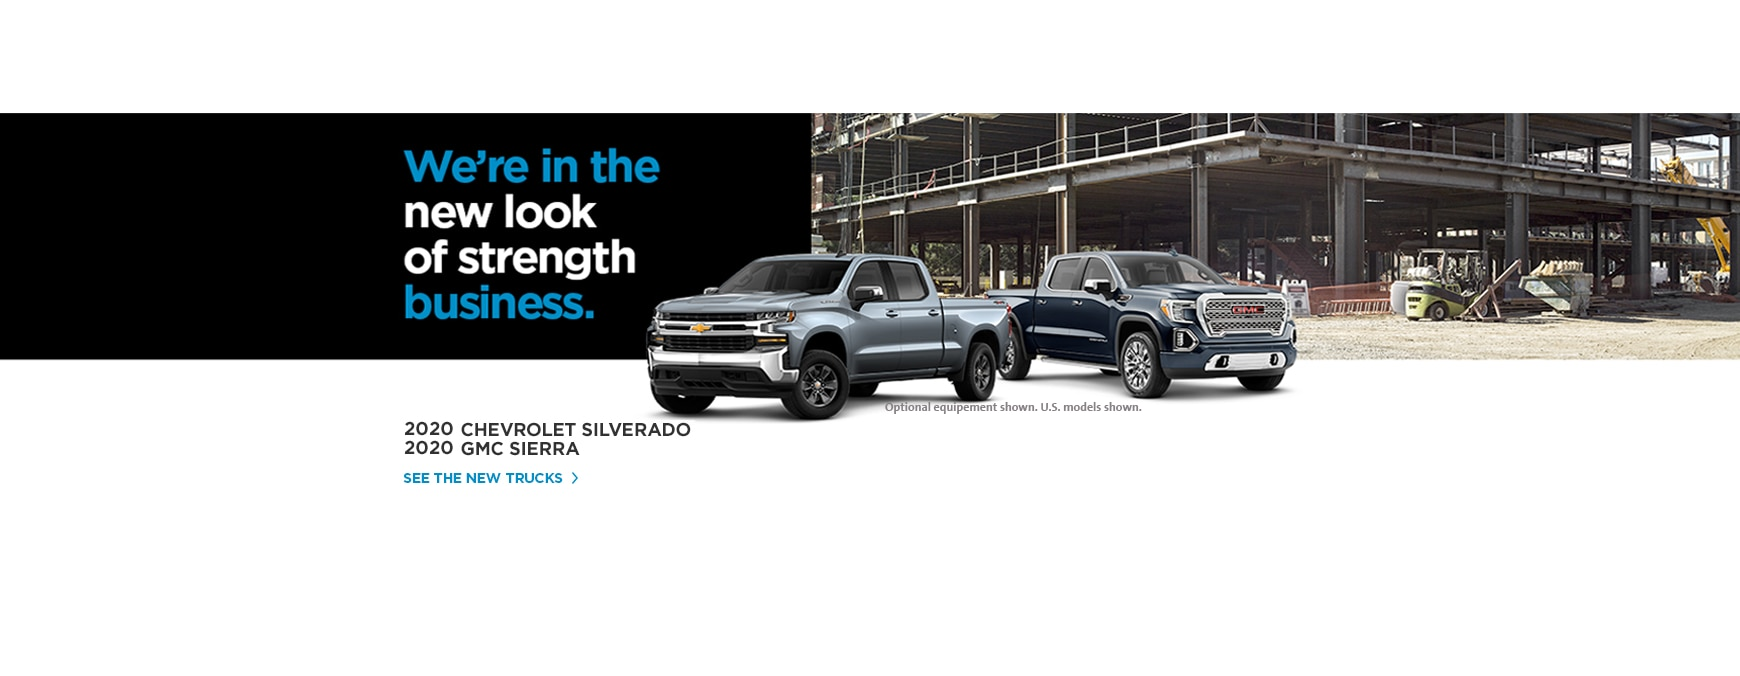 The all-new 2020 Chevrolet Silverado and GMC Sierra.